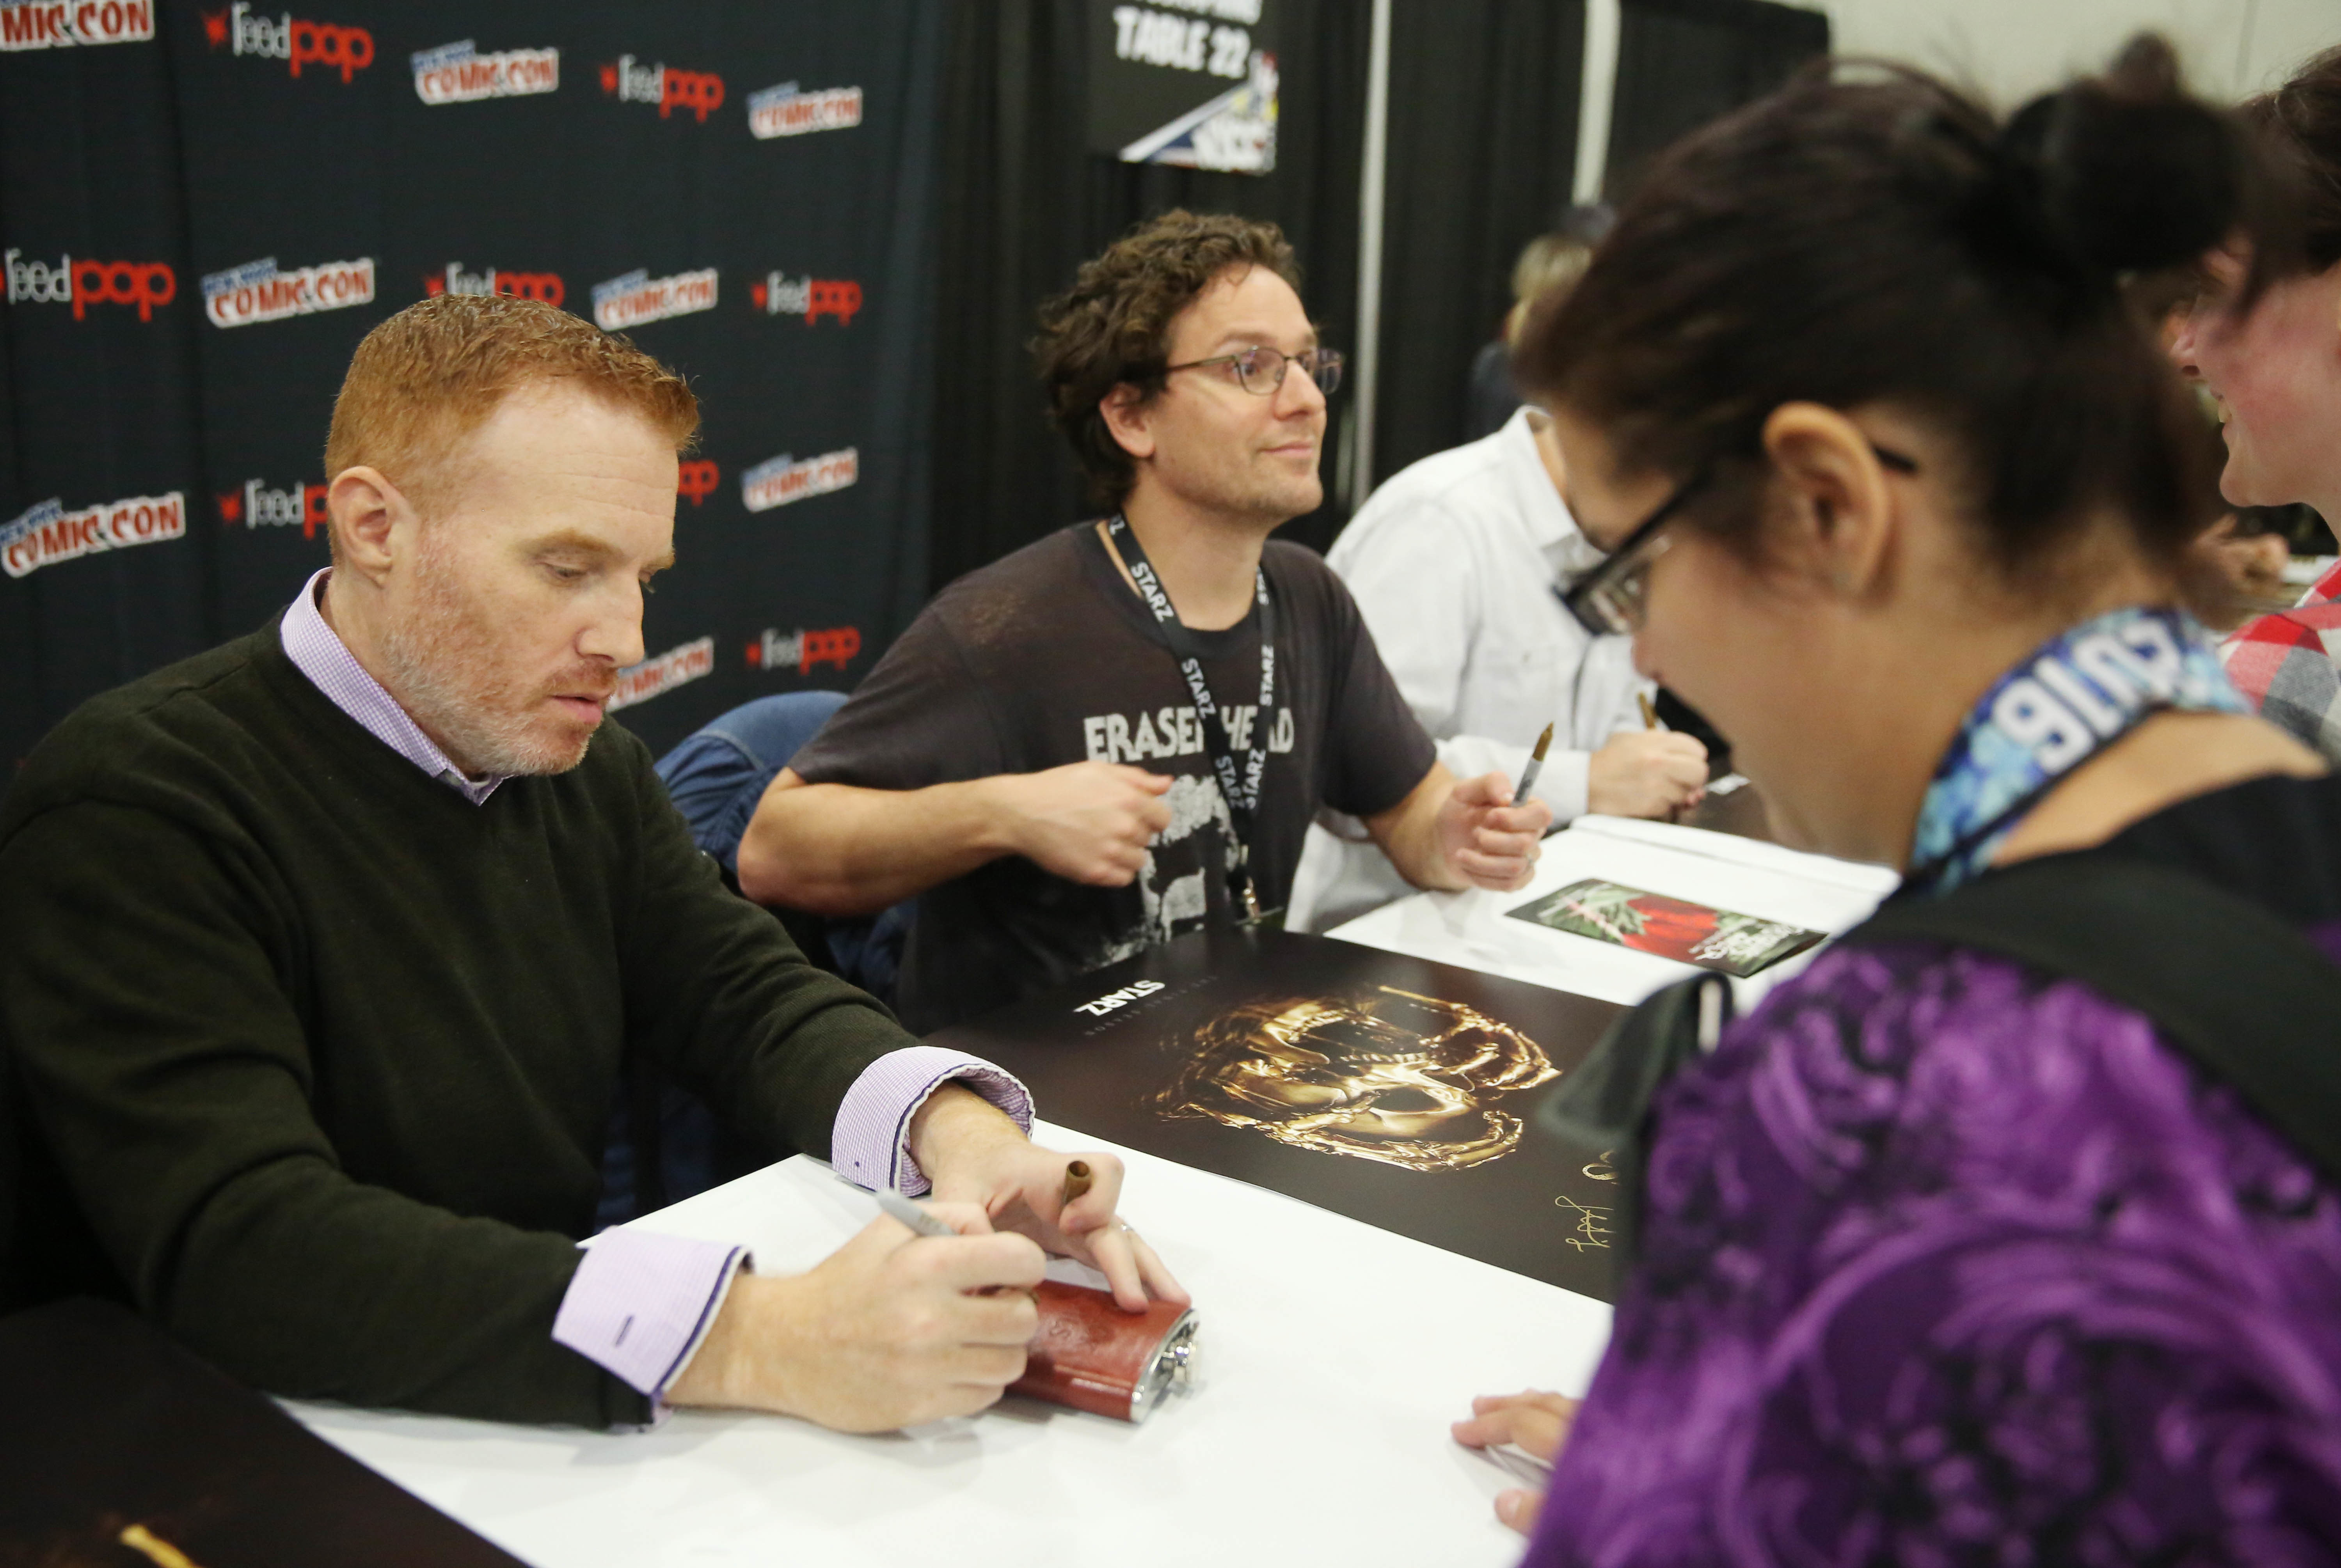 'Black Sails' showrunners Jonathan Steinberg and Robert Levine sign autographs for fans